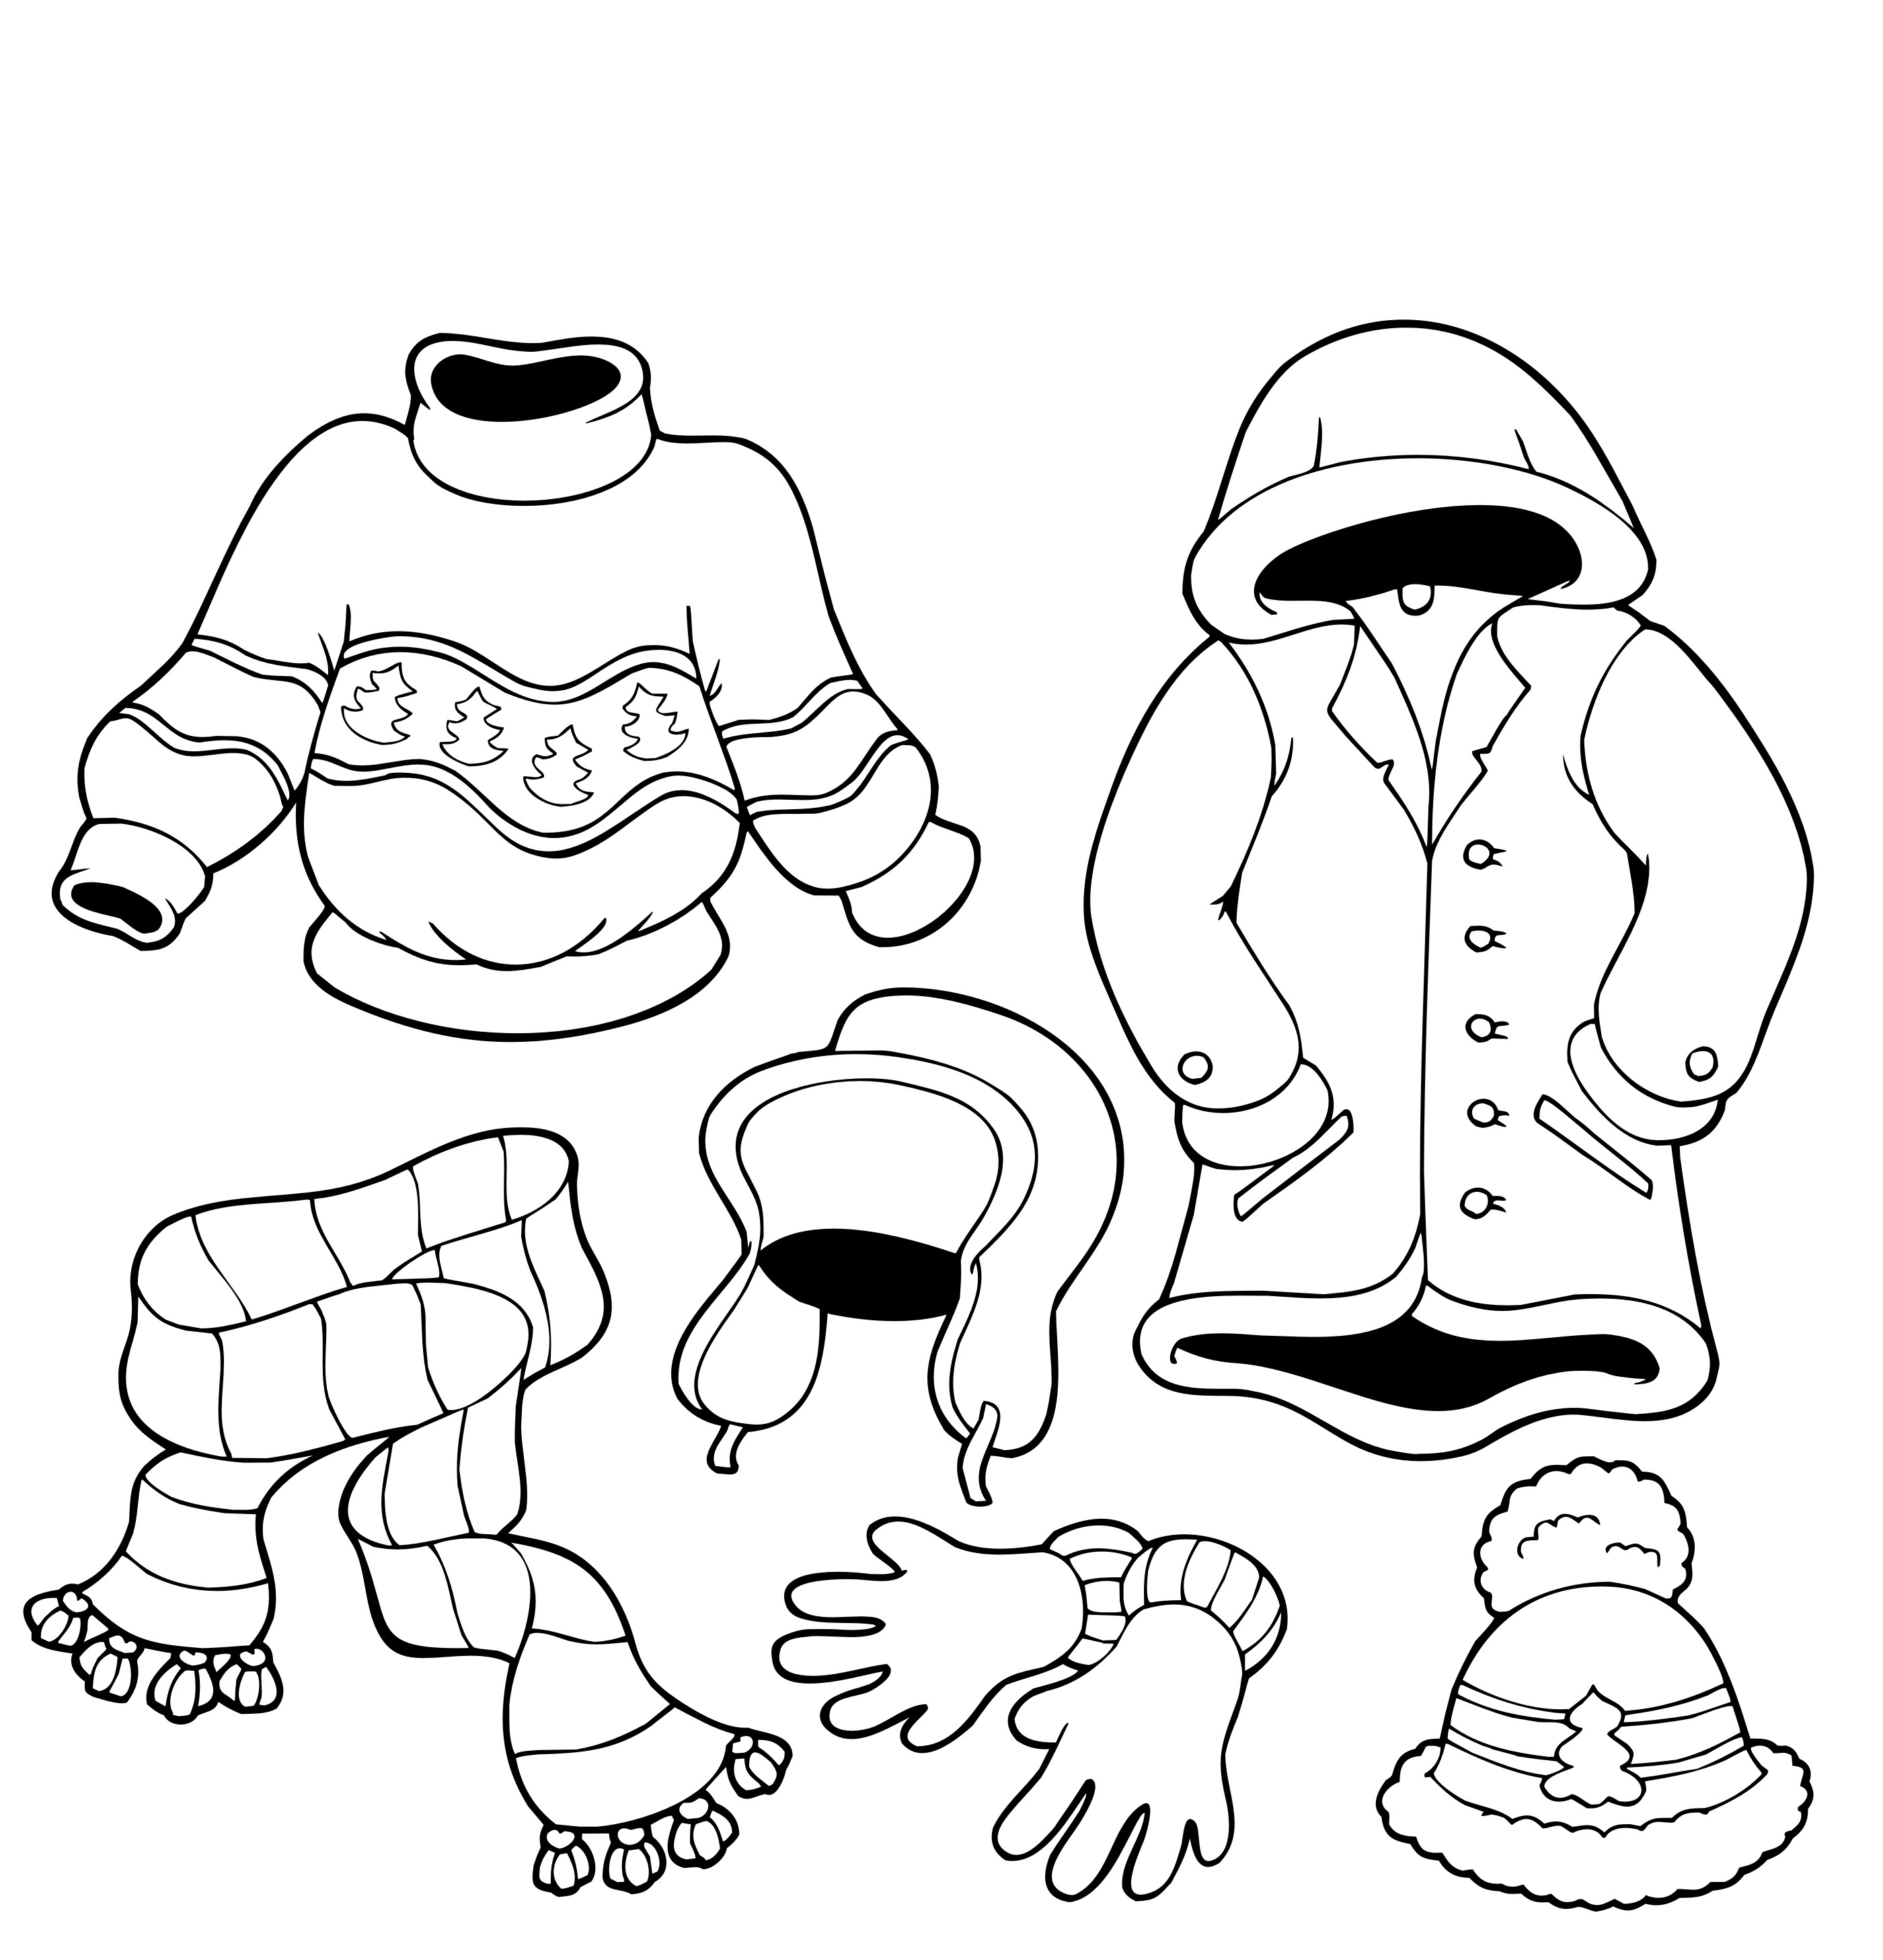 Free Printable Winter Coloring Pages For Kids Winter Coloring Sheets